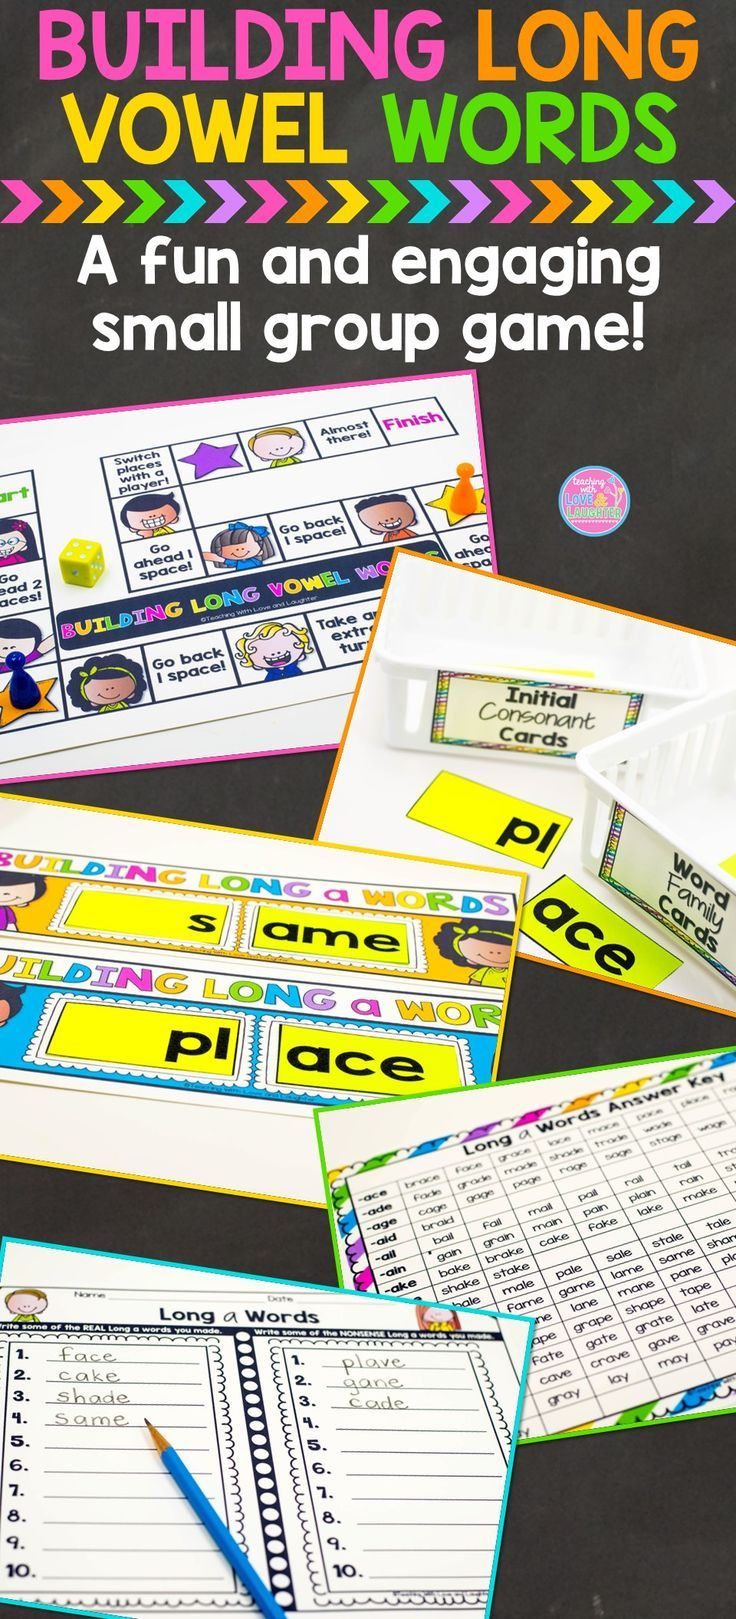 Building Long Vowel Words Small Group GameHelp students